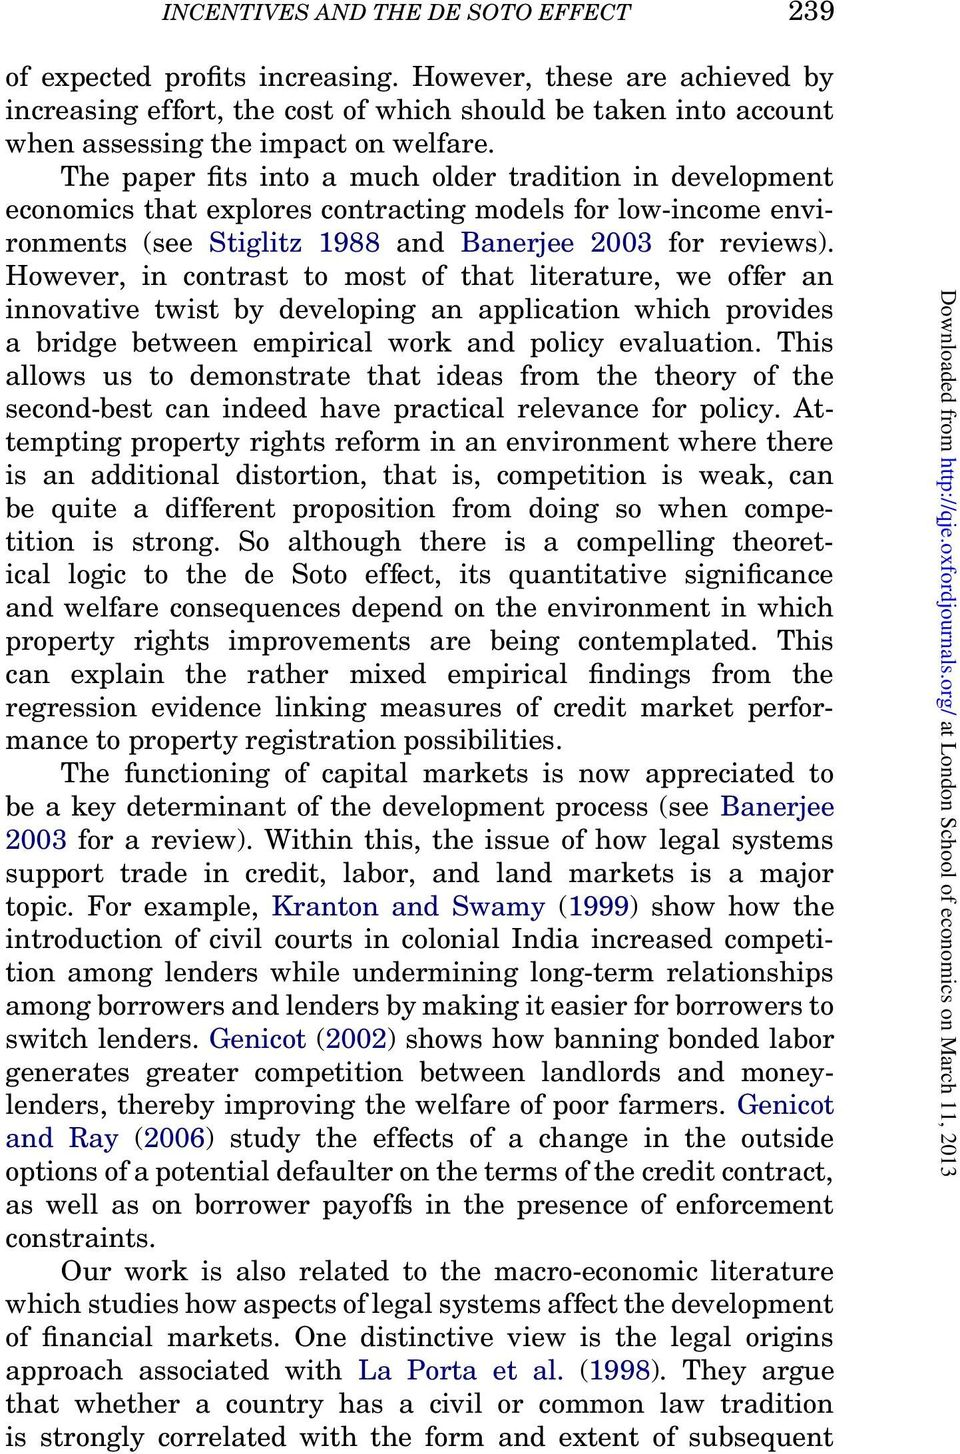 The paper fits into a much older tradition in development economics that explores contracting models for low-income environments (see Stiglitz 1988 and Banerjee 2003 for reviews).